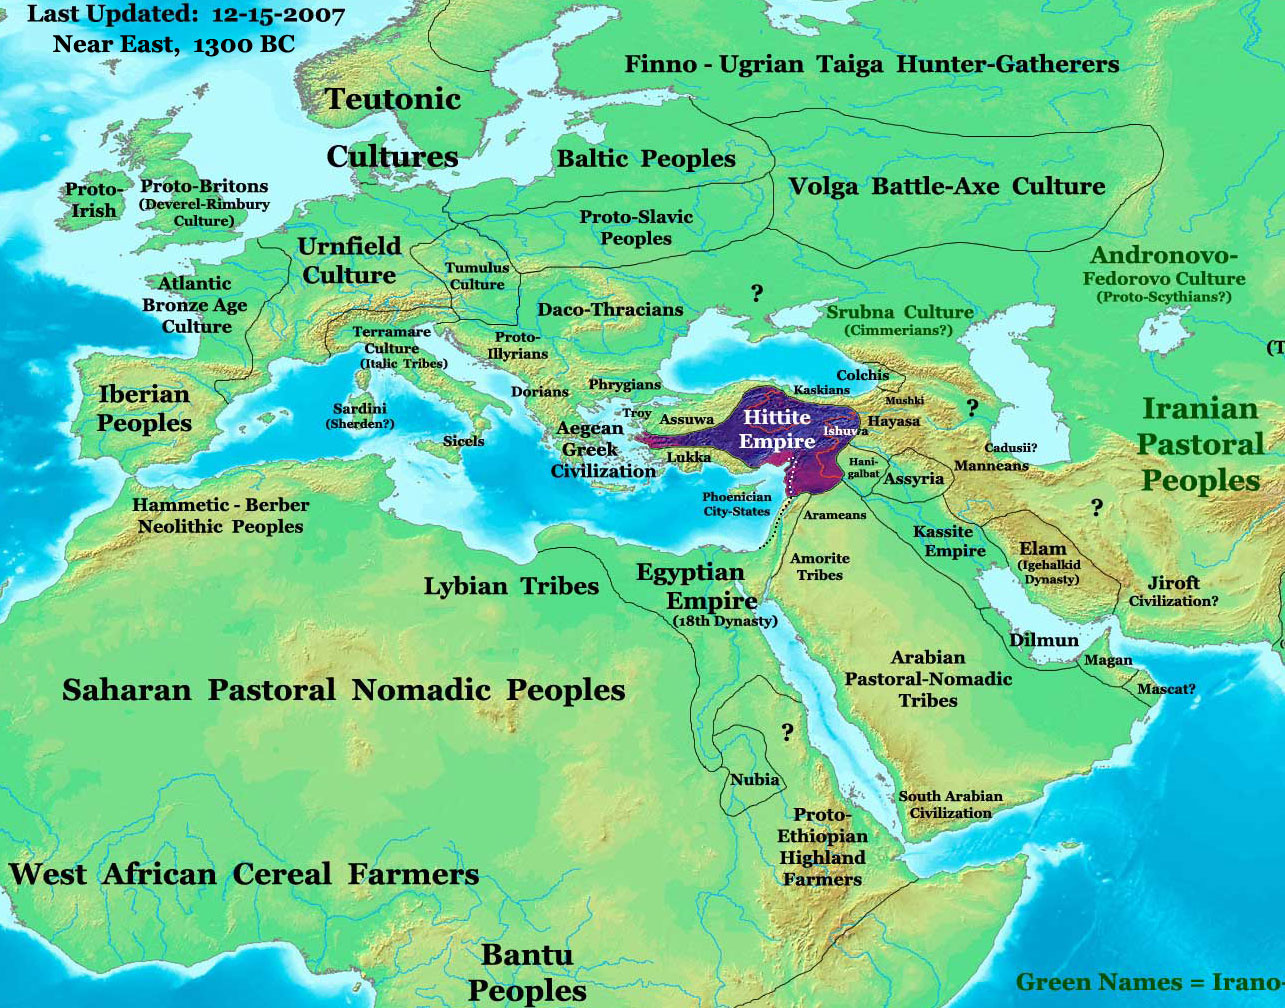 World history maps by thomas lessman hittite empire in 1300 bc ancient history maps gumiabroncs